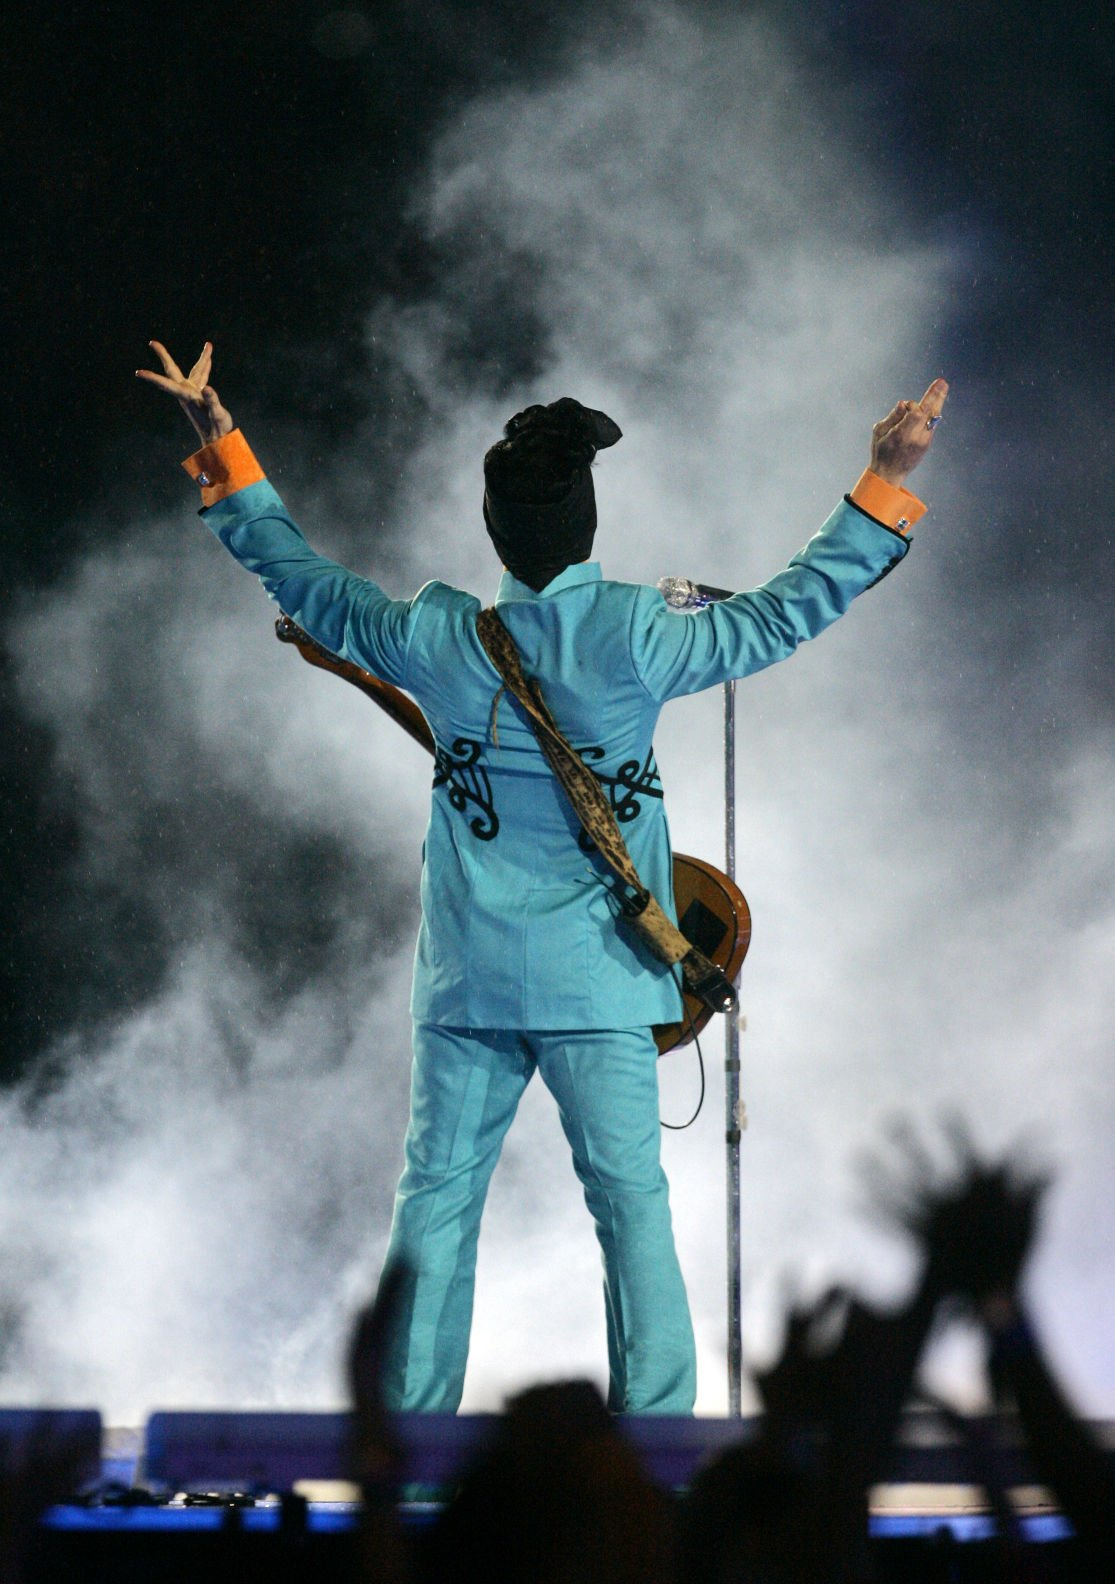 Doves crysuperstar prince dies at his minnesota home local news 4 2007 file photo prince performs during the halftime show at super bowl xli at dolphin stadium in miami princes publicist has confirmed that prince malvernweather Choice Image